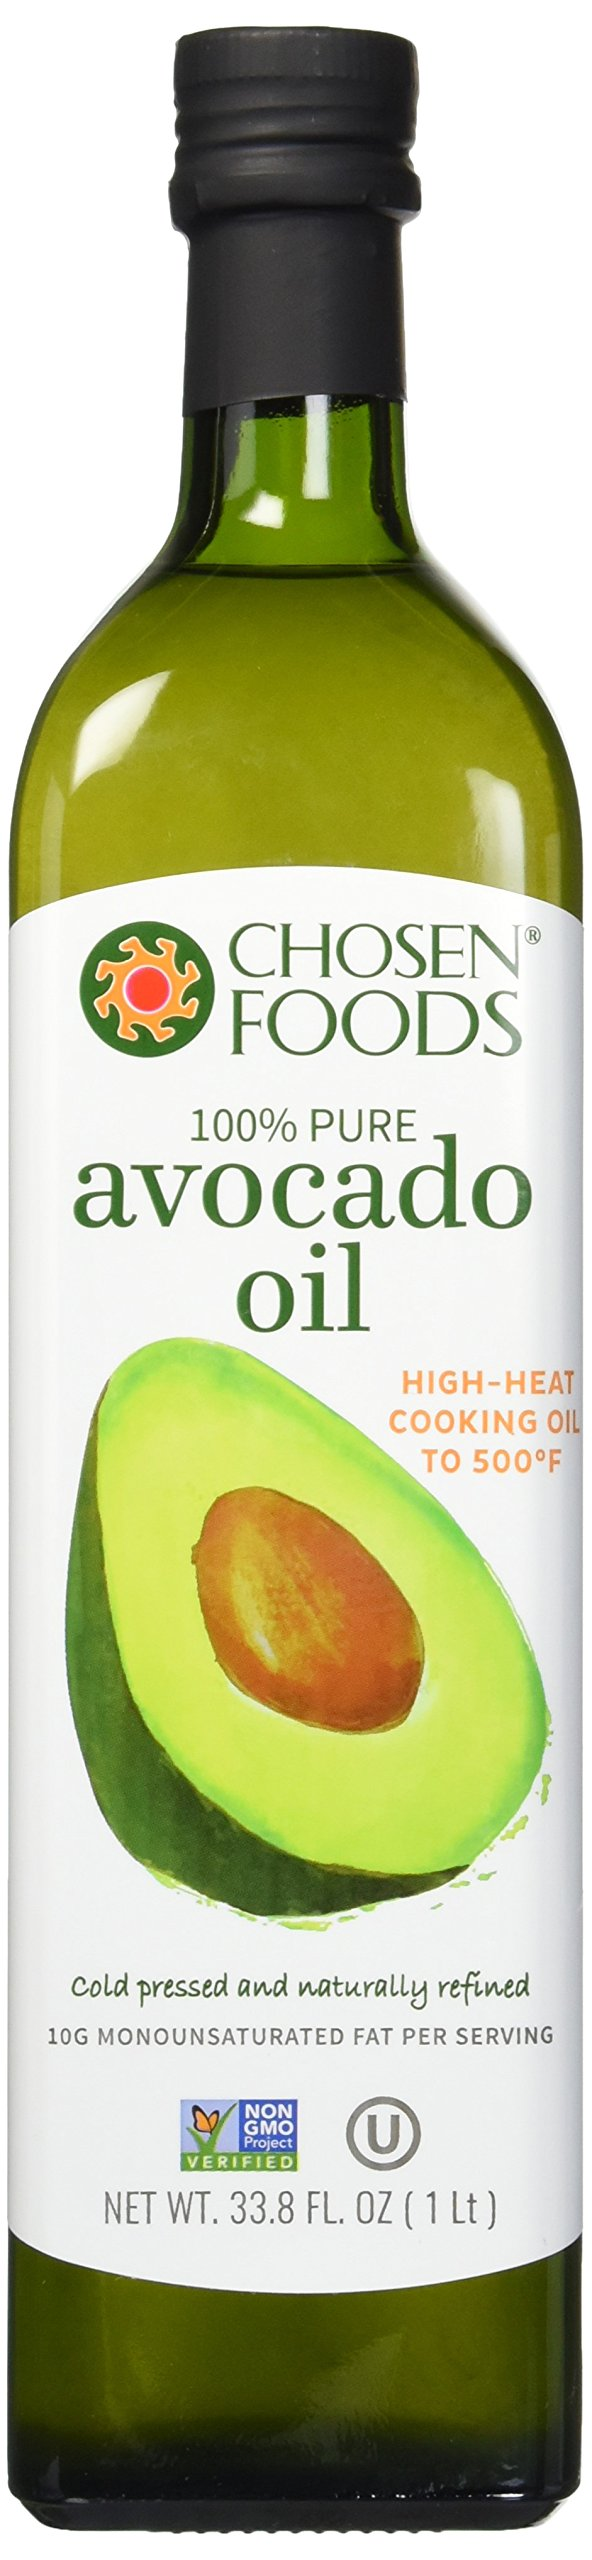 Chosen Foods 100% Avocado Cooking Oil, 1L Bottle (33.8fl)